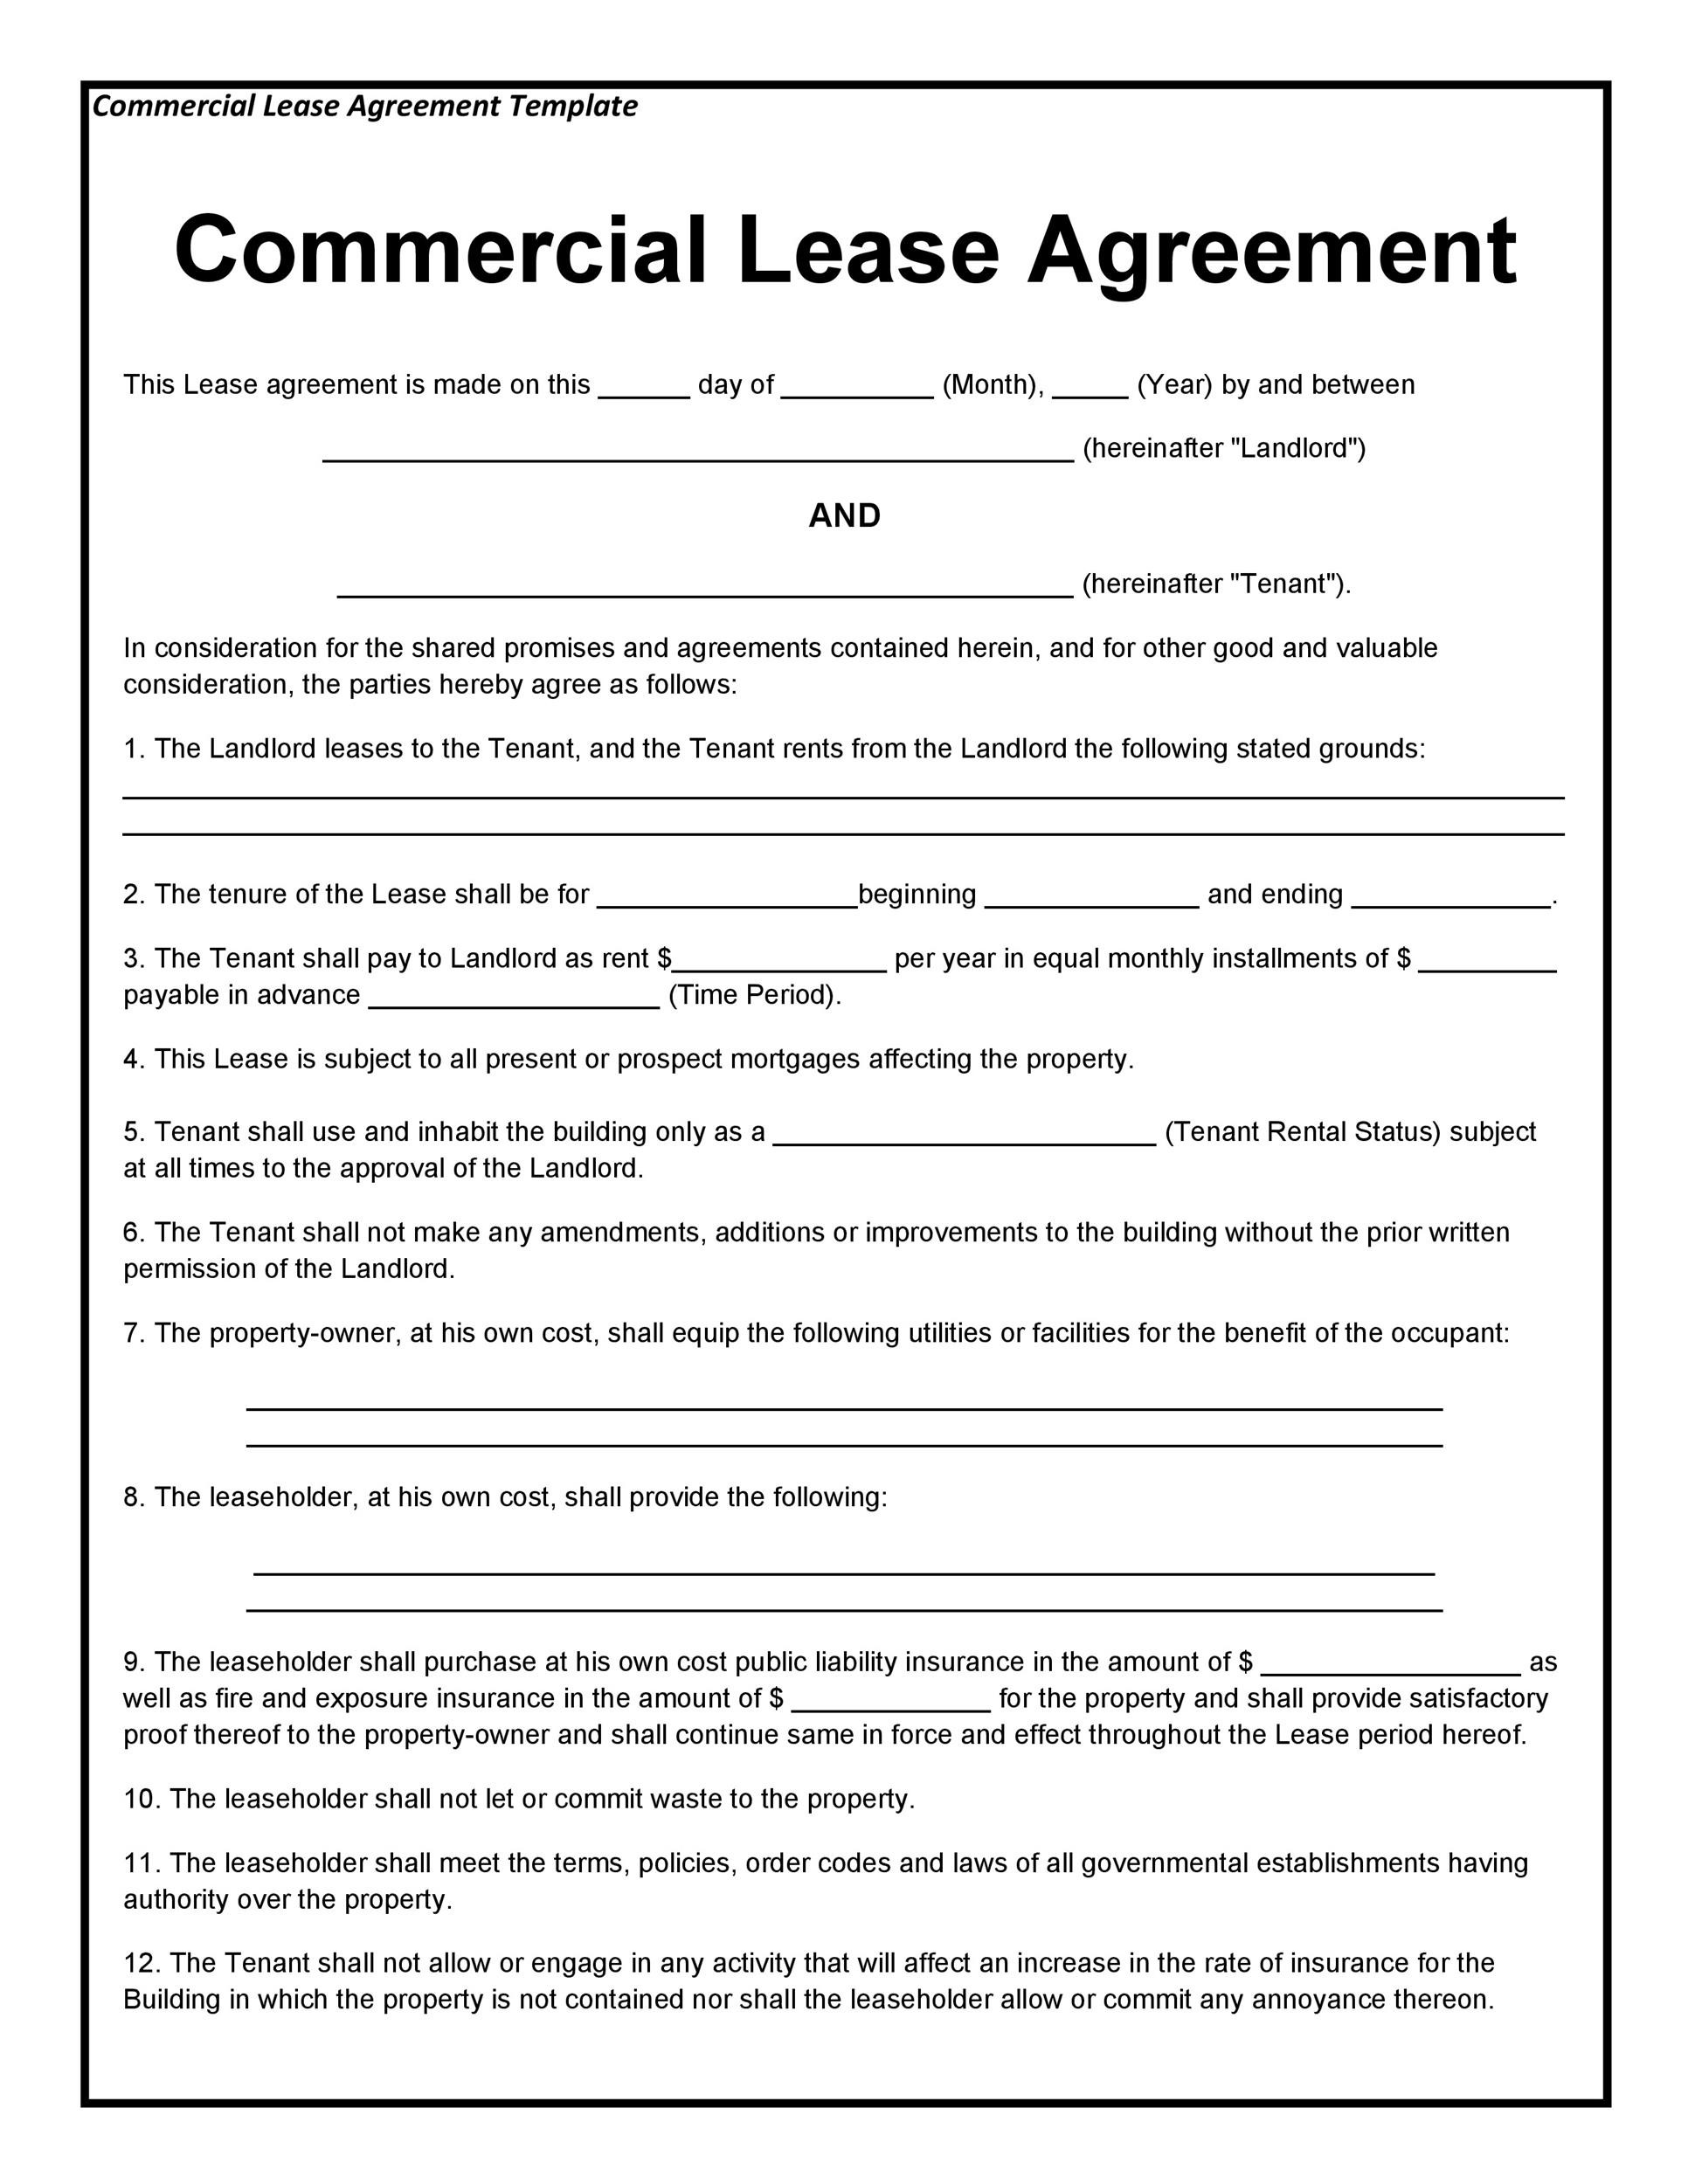 26 Free Commercial Lease Agreement Templates - Template Lab - commercial rent agreement format